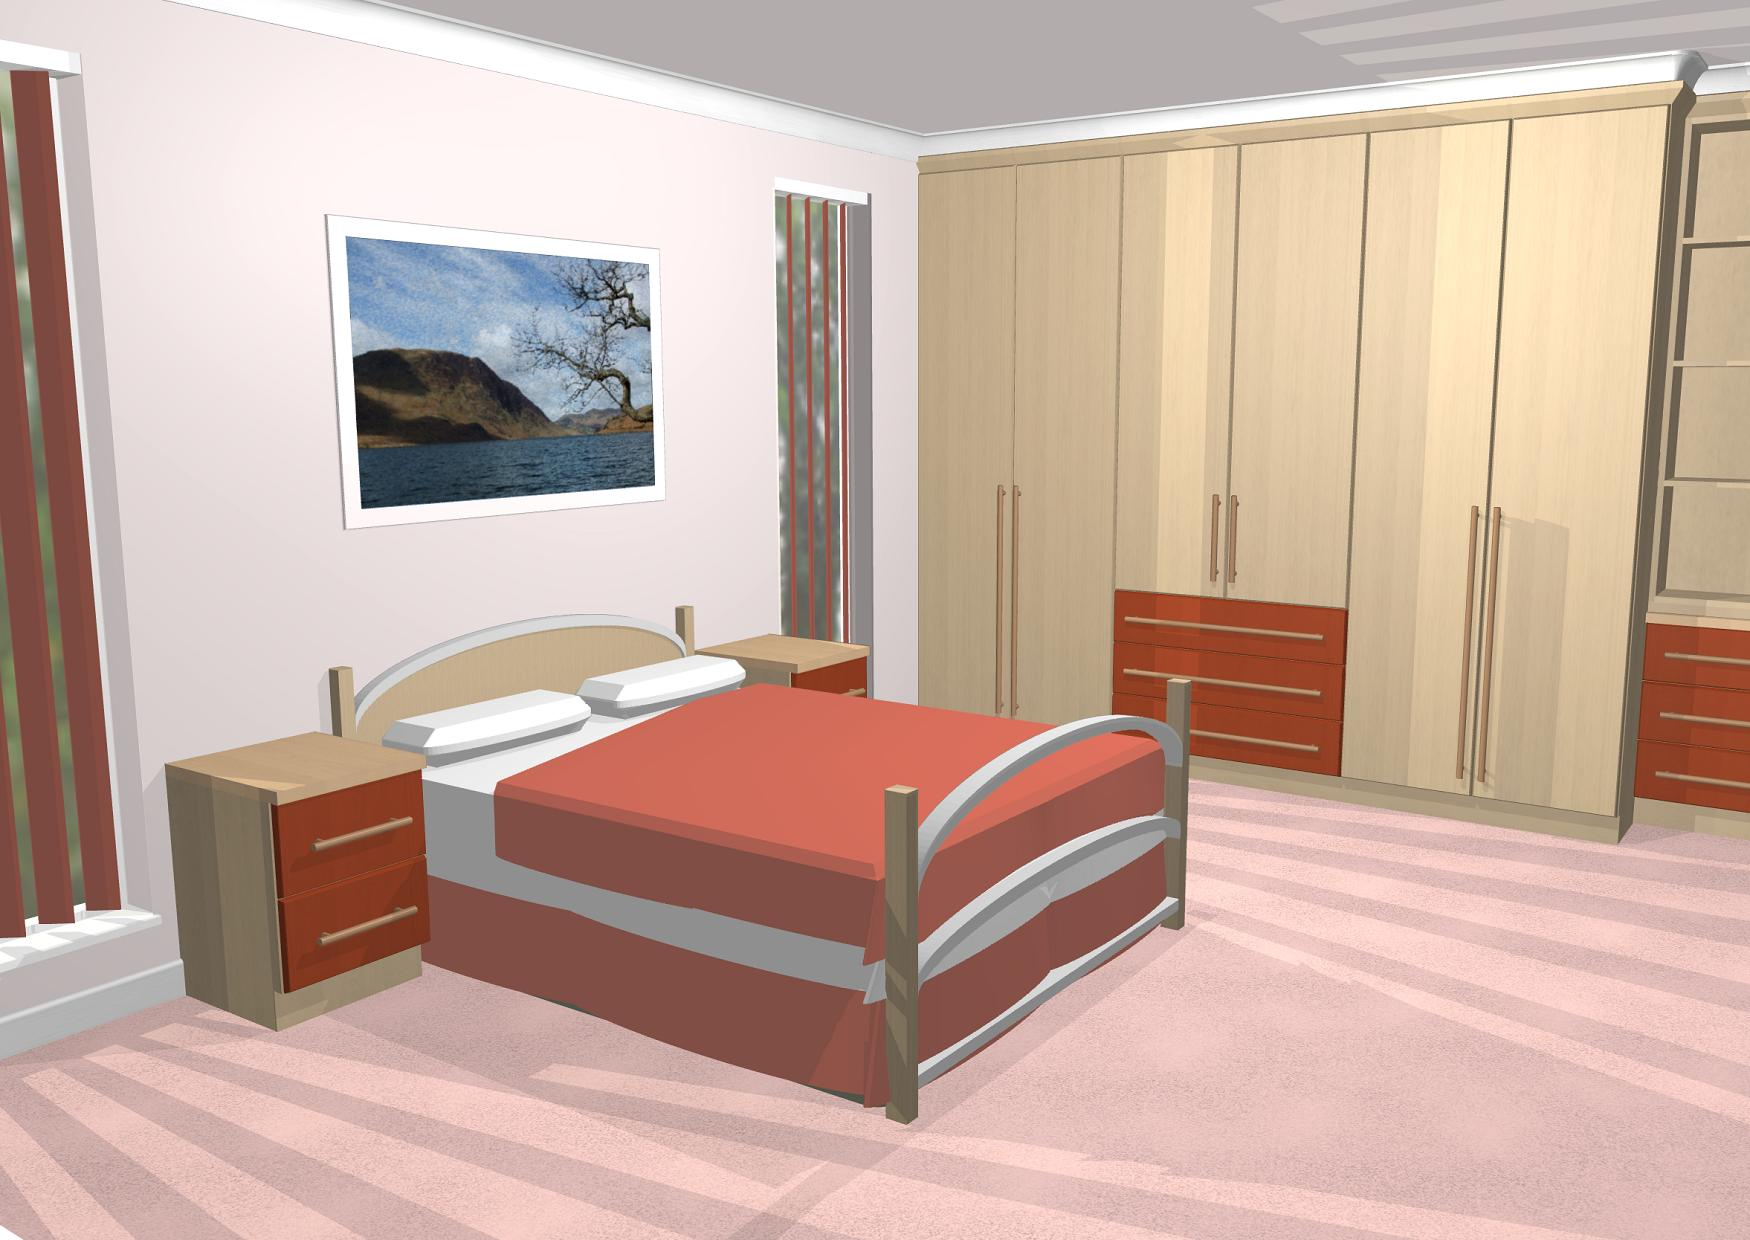 CAD Gallery of 3D Bedroom images